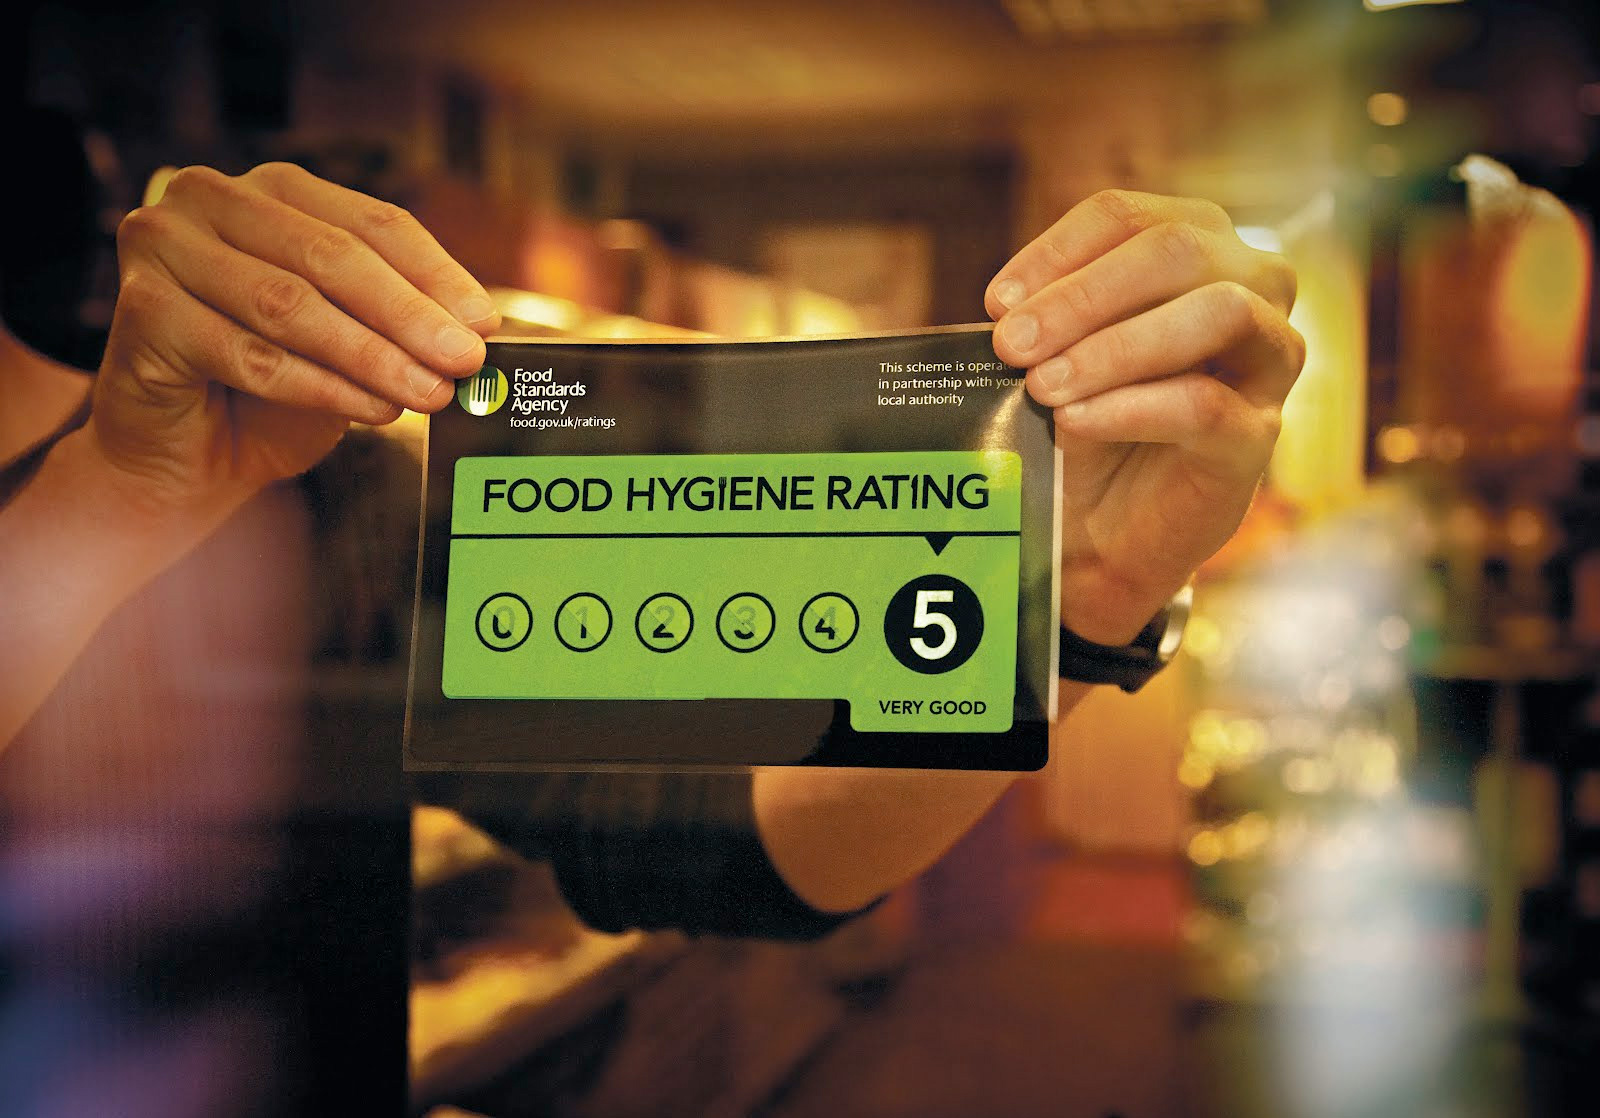 hygiene rating